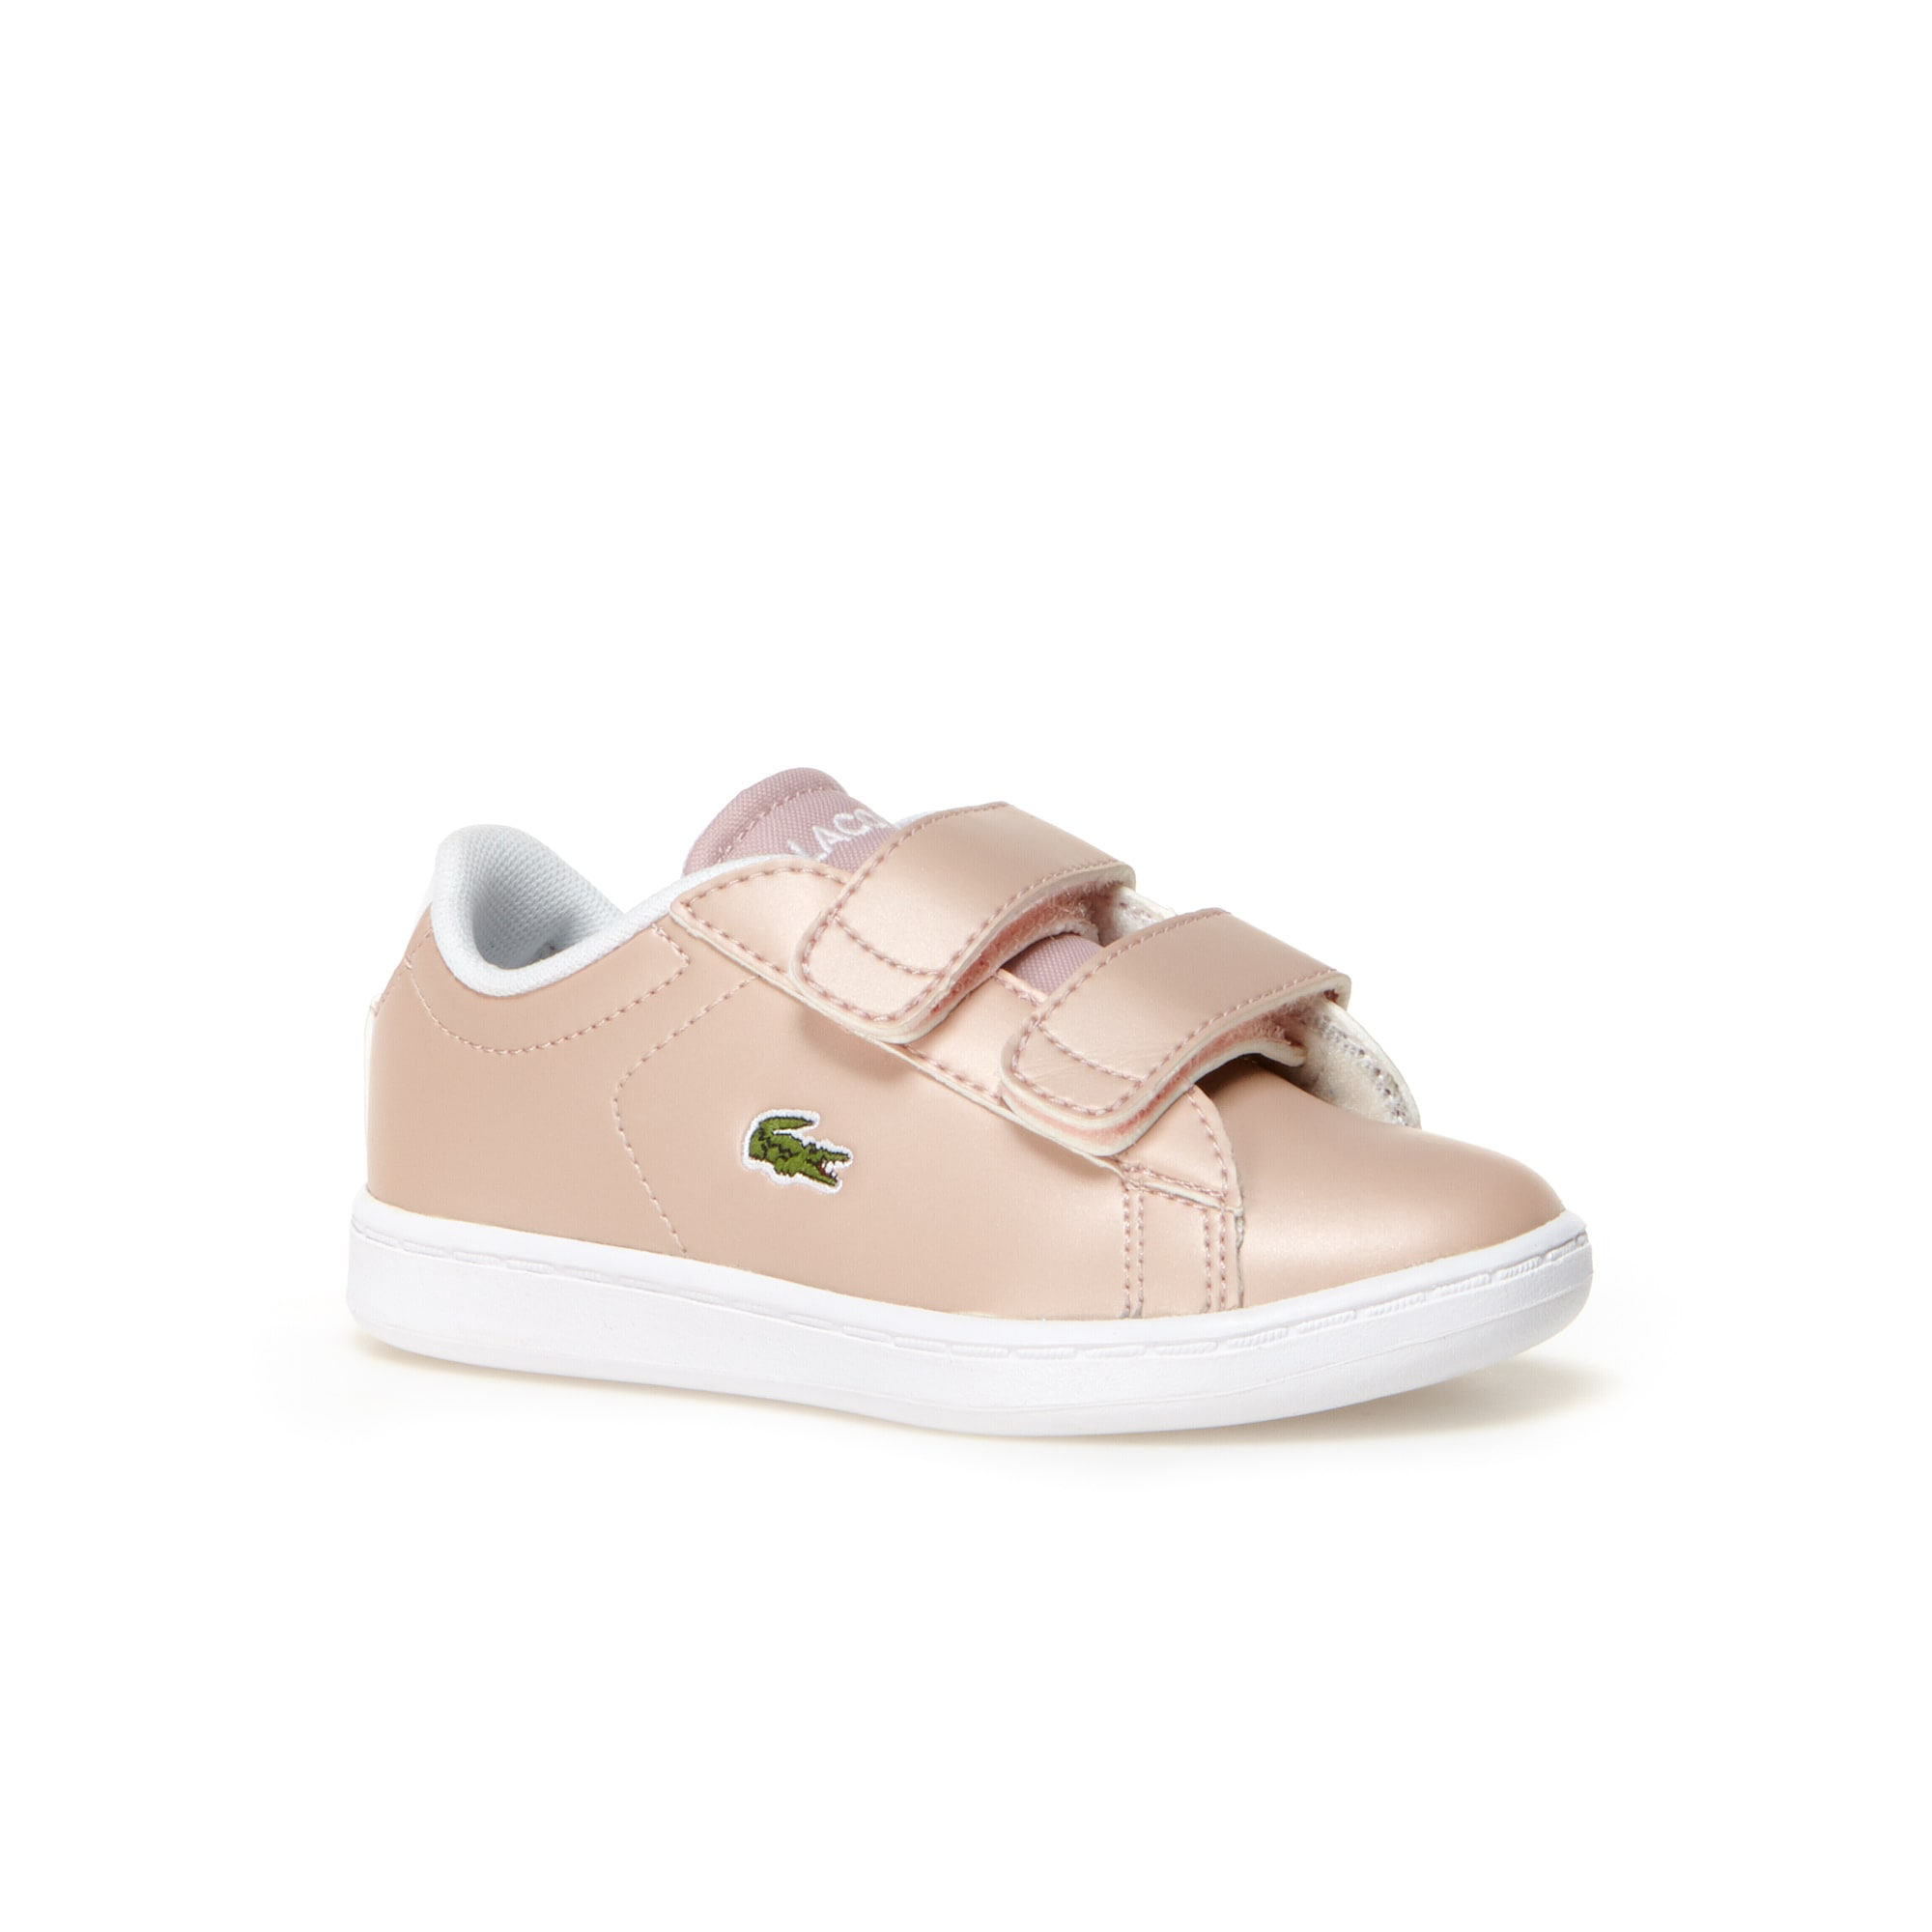 Kids' Carnaby Evo Hook and loop Strap Glossy Trainers